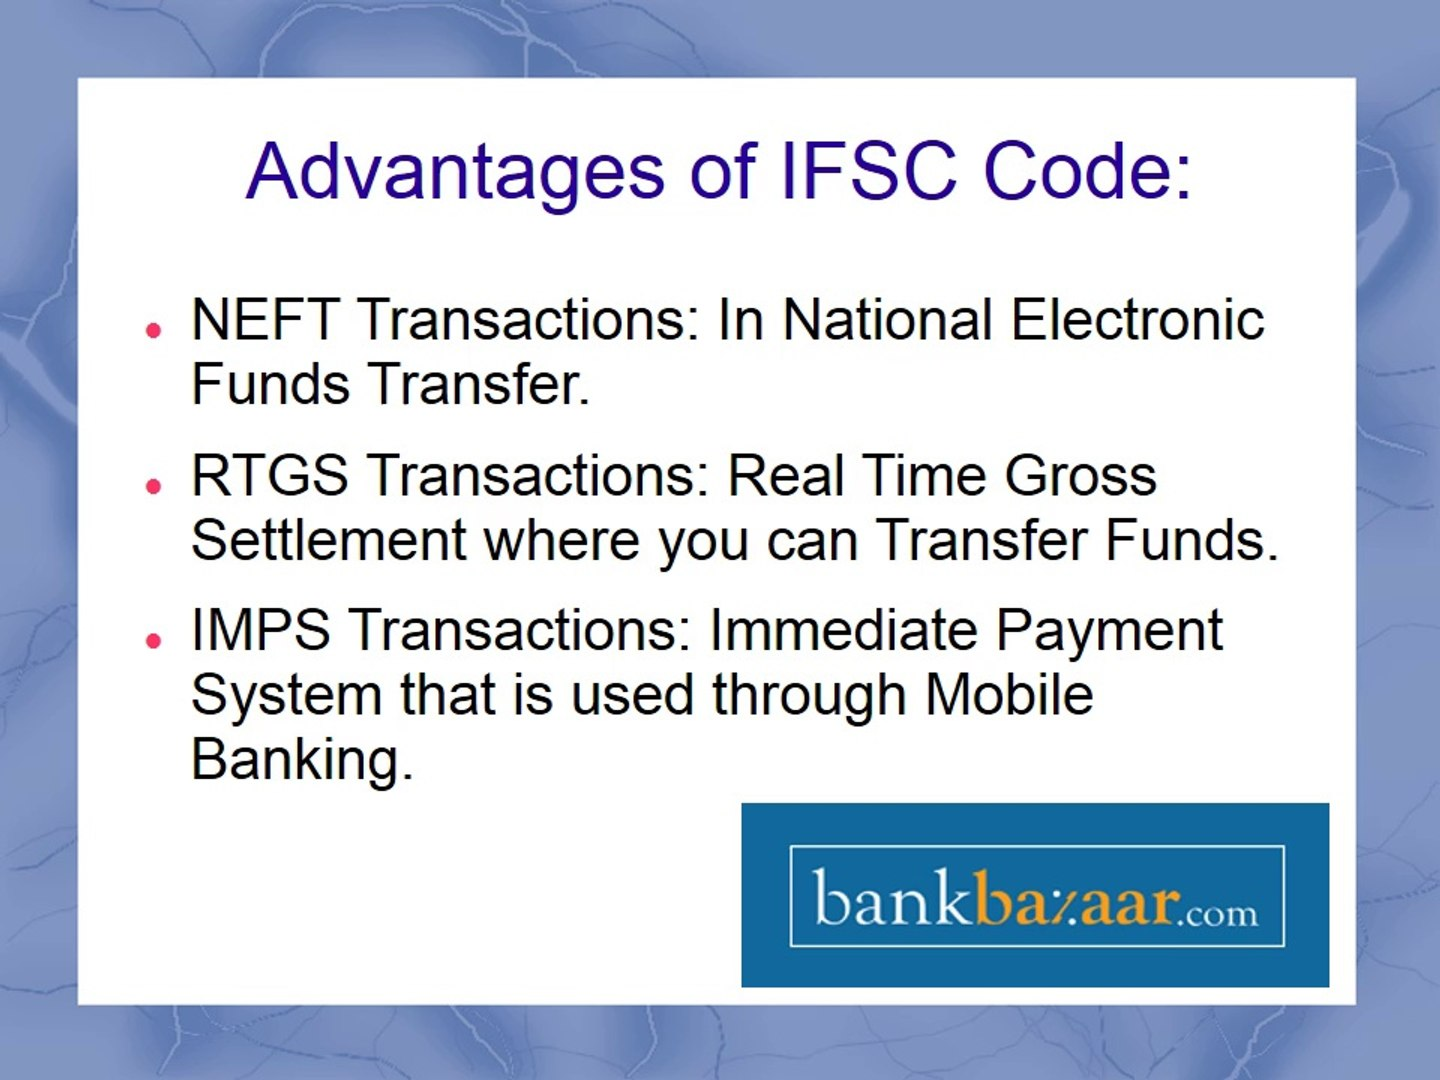 Advantage of IFSC Code